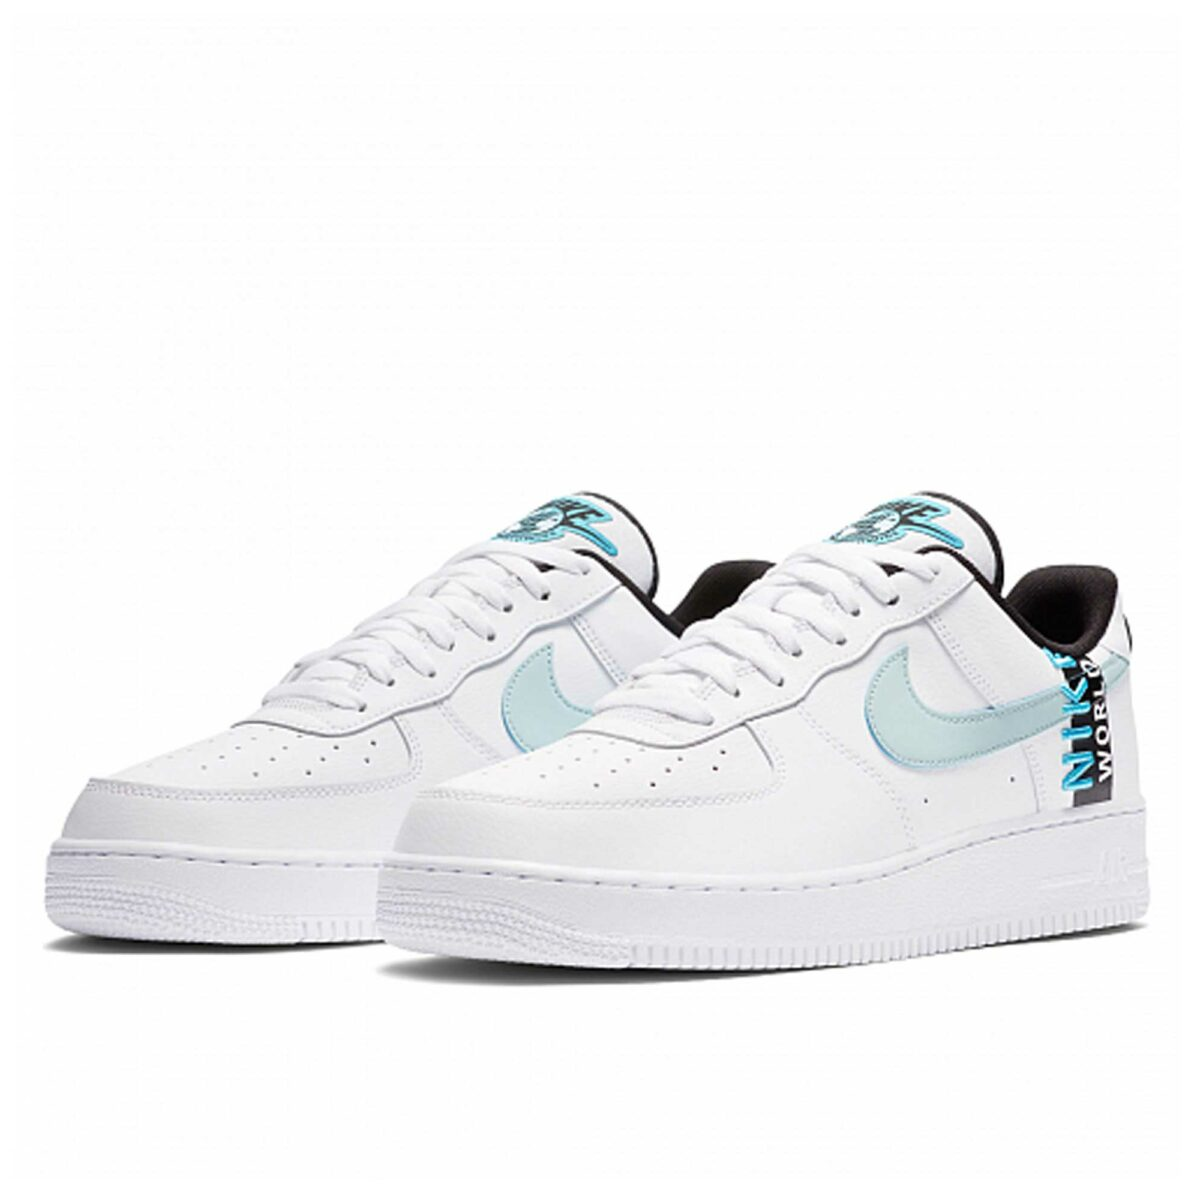 nike air force 1 07 lv8 worldwide white blue ck6924_100 купить